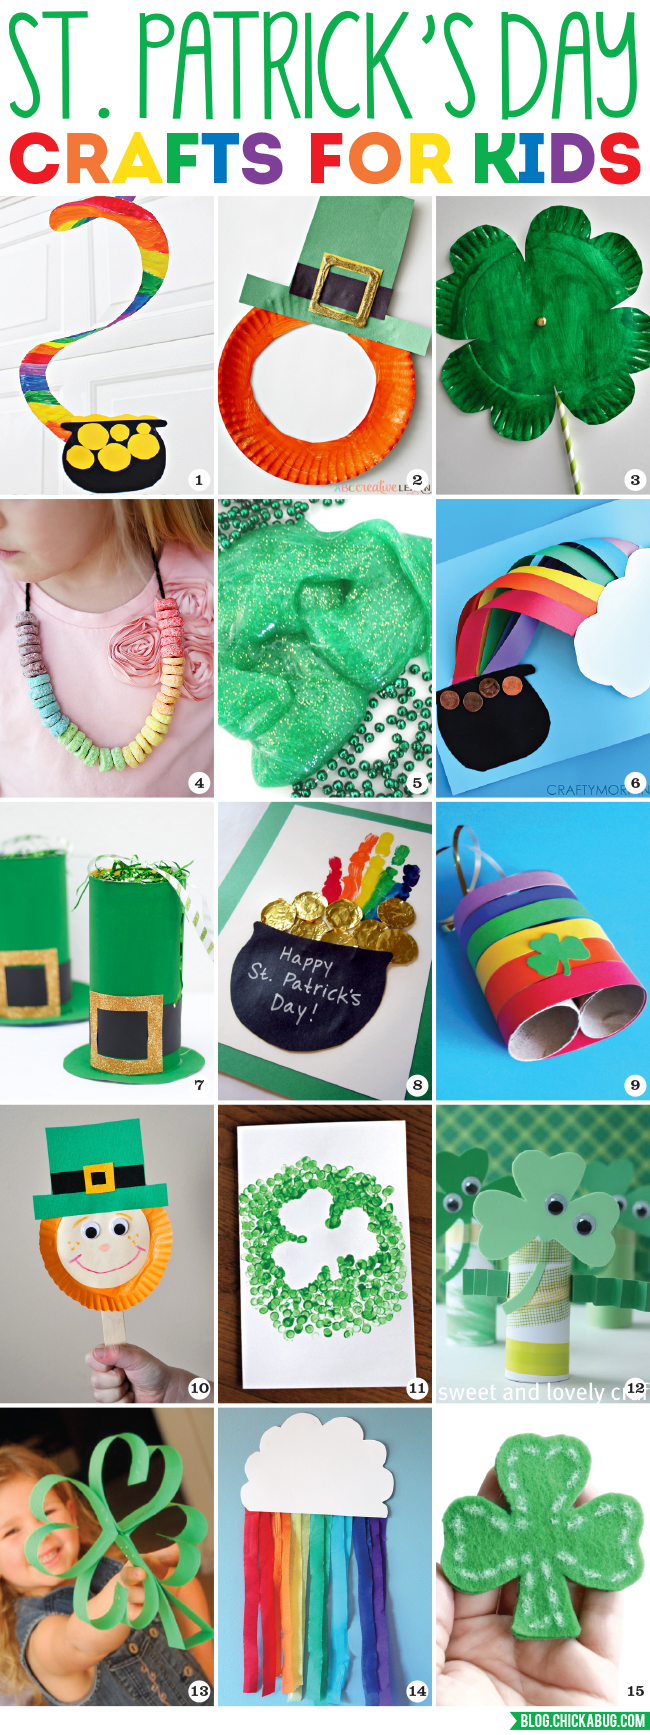 St. Patrick's Day Crafts for Kids. Celebrate St. Patrick's Day with these cute and easy holiday crafts!